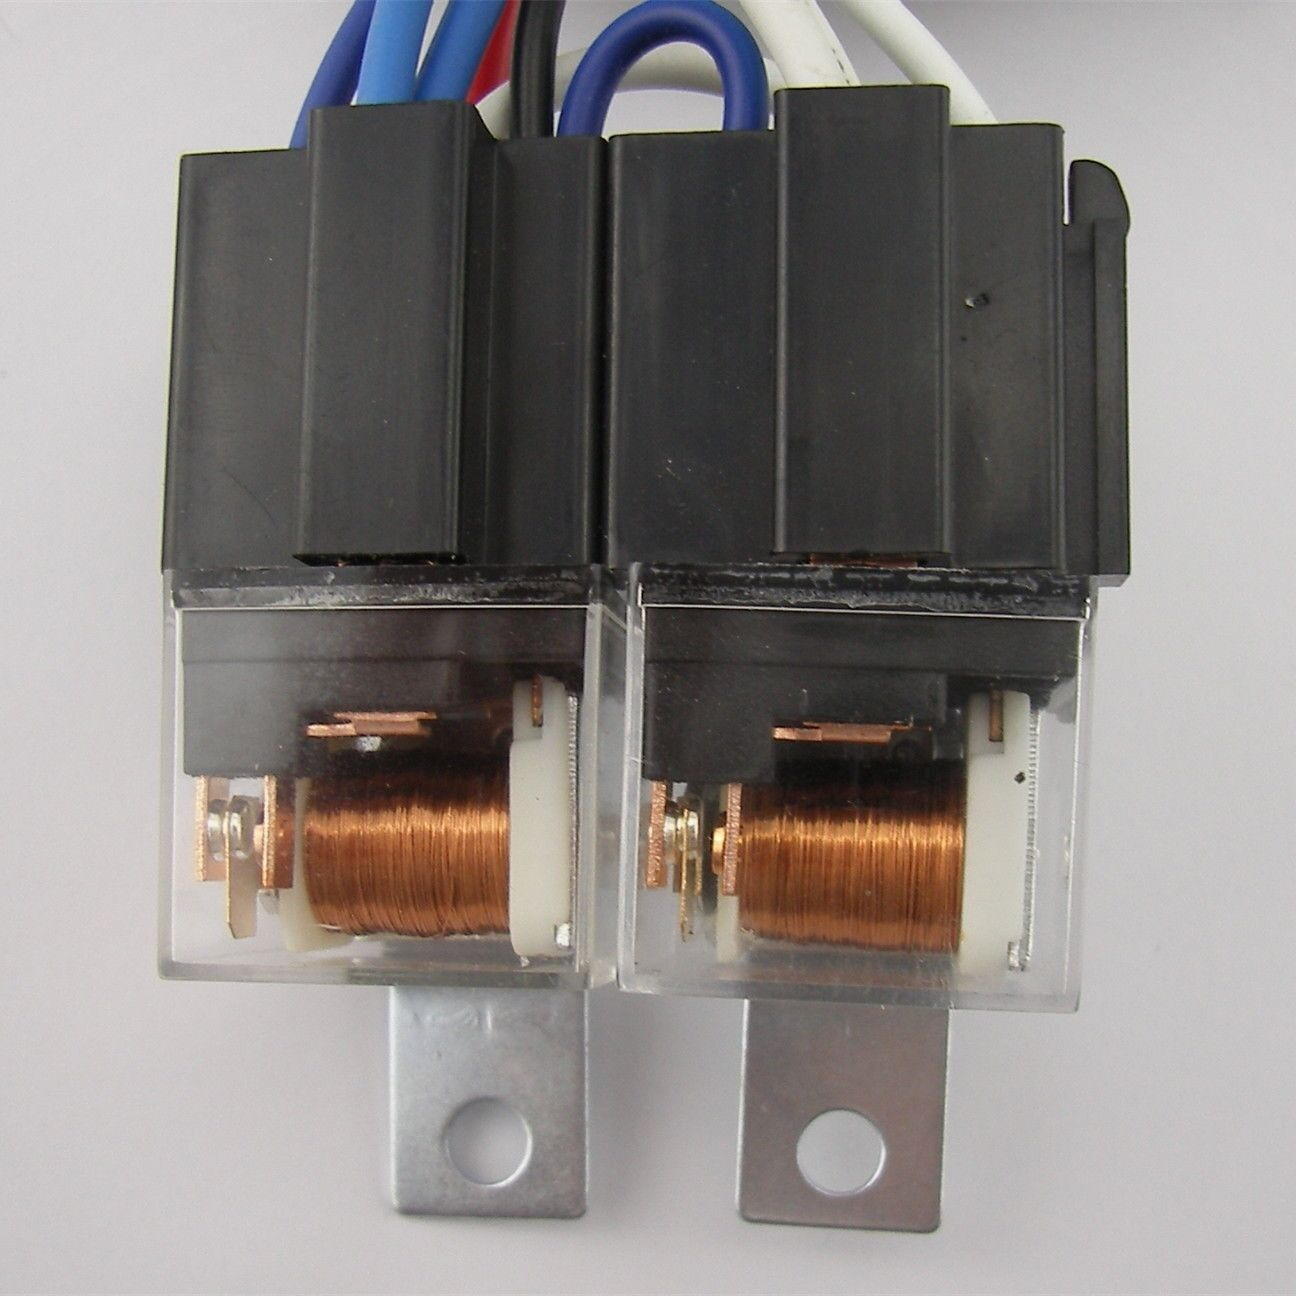 4 Headlight Relay Wire Harness H4 9003 Light Bulb Ceramic Socket Hb2 Wiring Diagram F250 Norton Secured Powered By Verisign